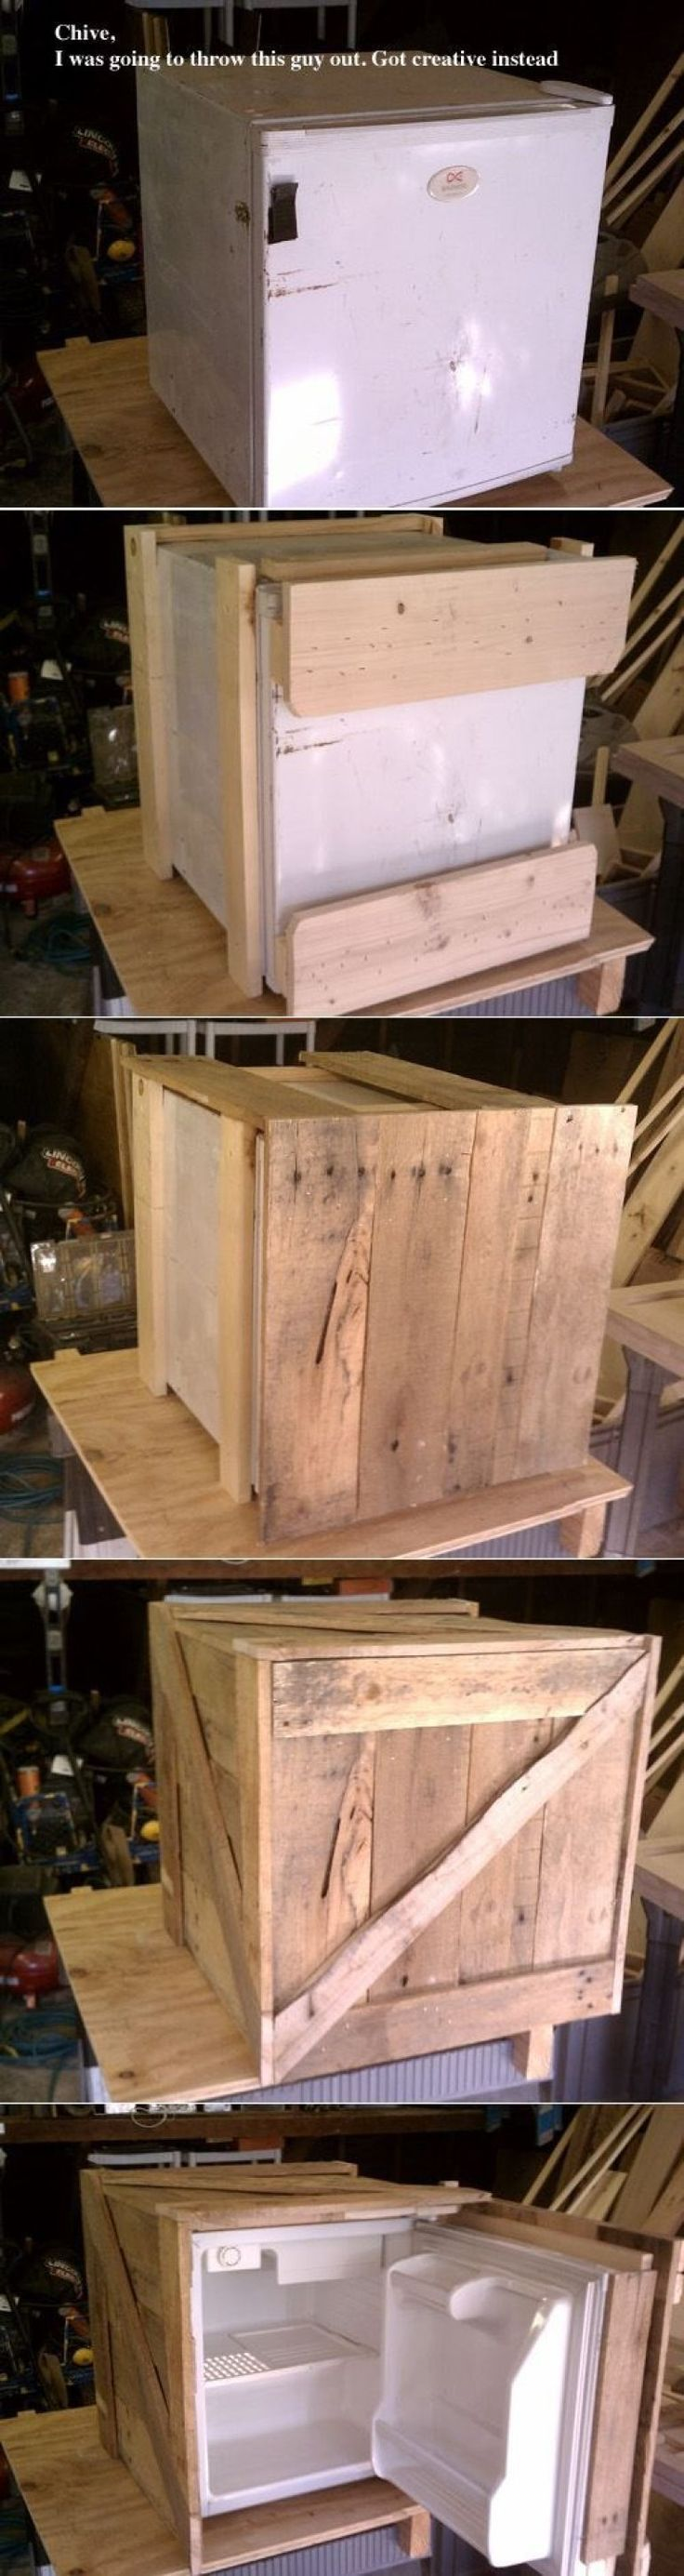 Crate Fridge for the Man Cave (Just Don't Go All Donkey Kong On It)